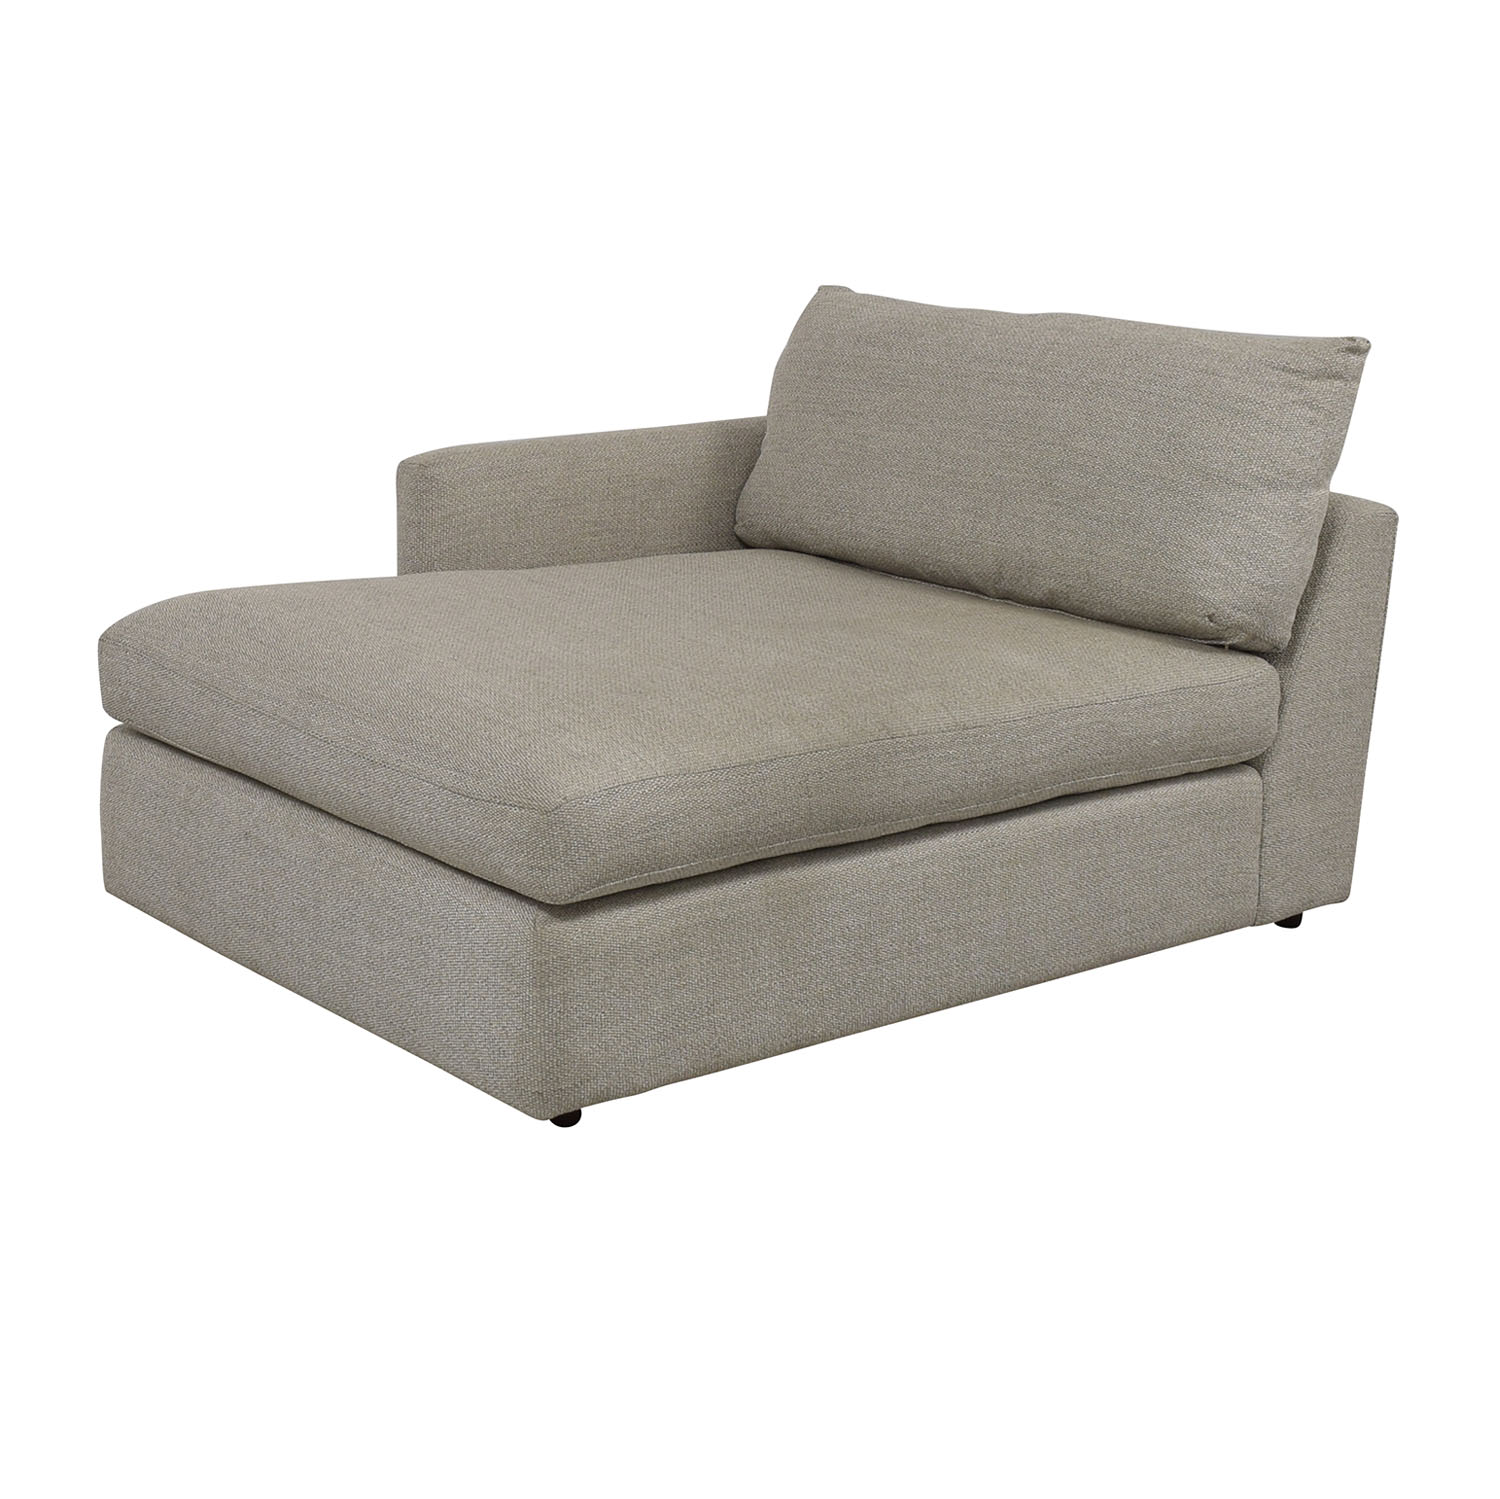 Crate & Barrel Lounge II Left Arm Chaise Crate & Barrel